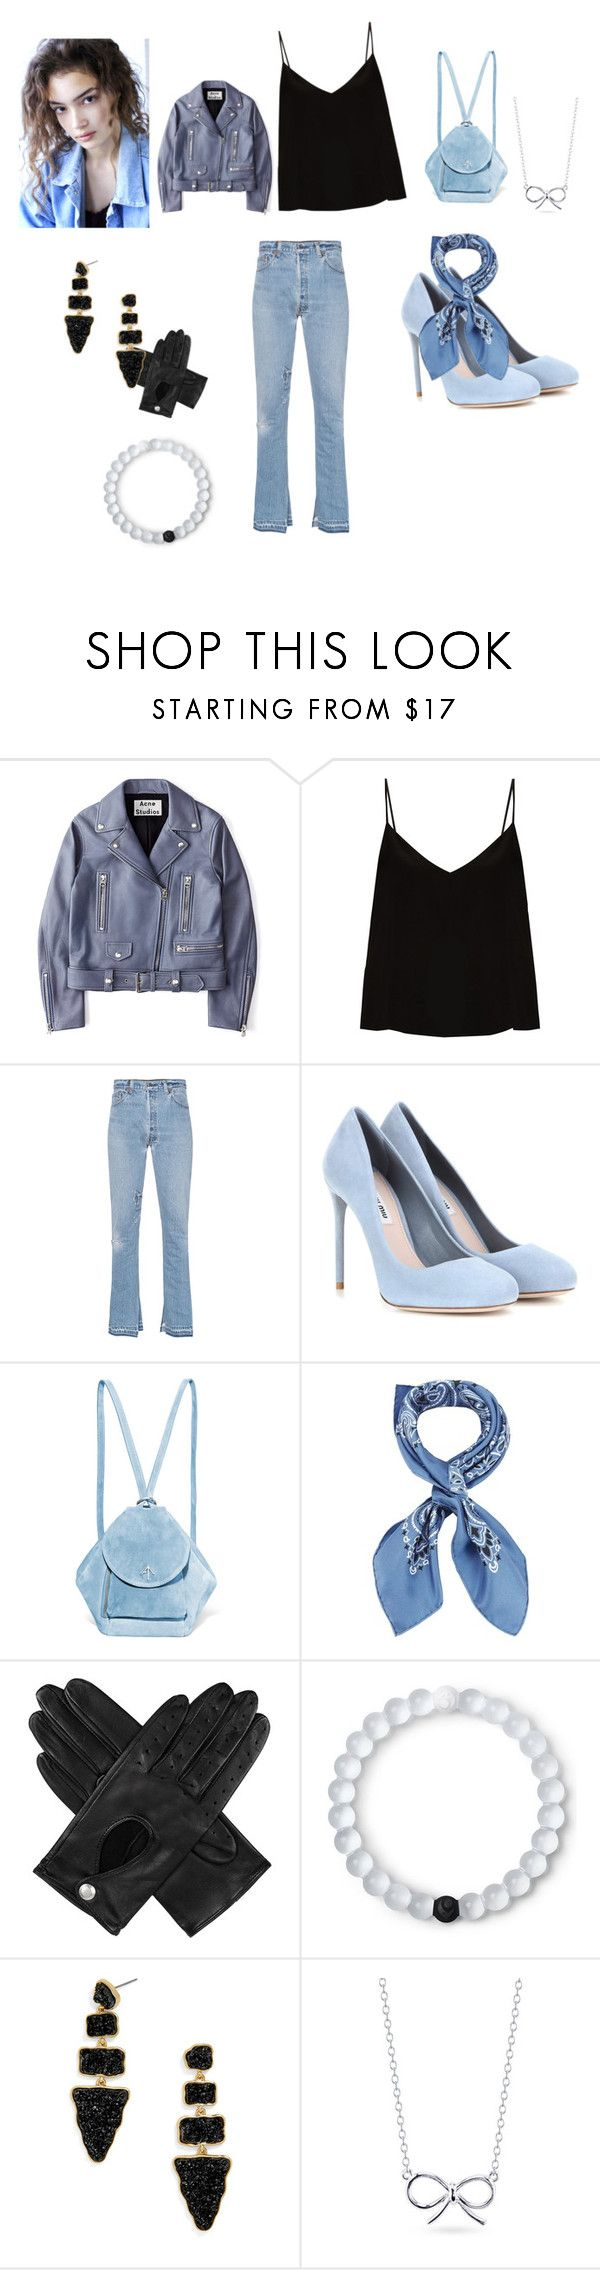 """Голубая луна☺️🌜"" by nastya-anas-mikheeva on Polyvore featuring мода, Acne Studios, Raey, RE/DONE, Miu Miu, MANU Atelier, Manipuri, Dents, Lokai и BaubleBar"